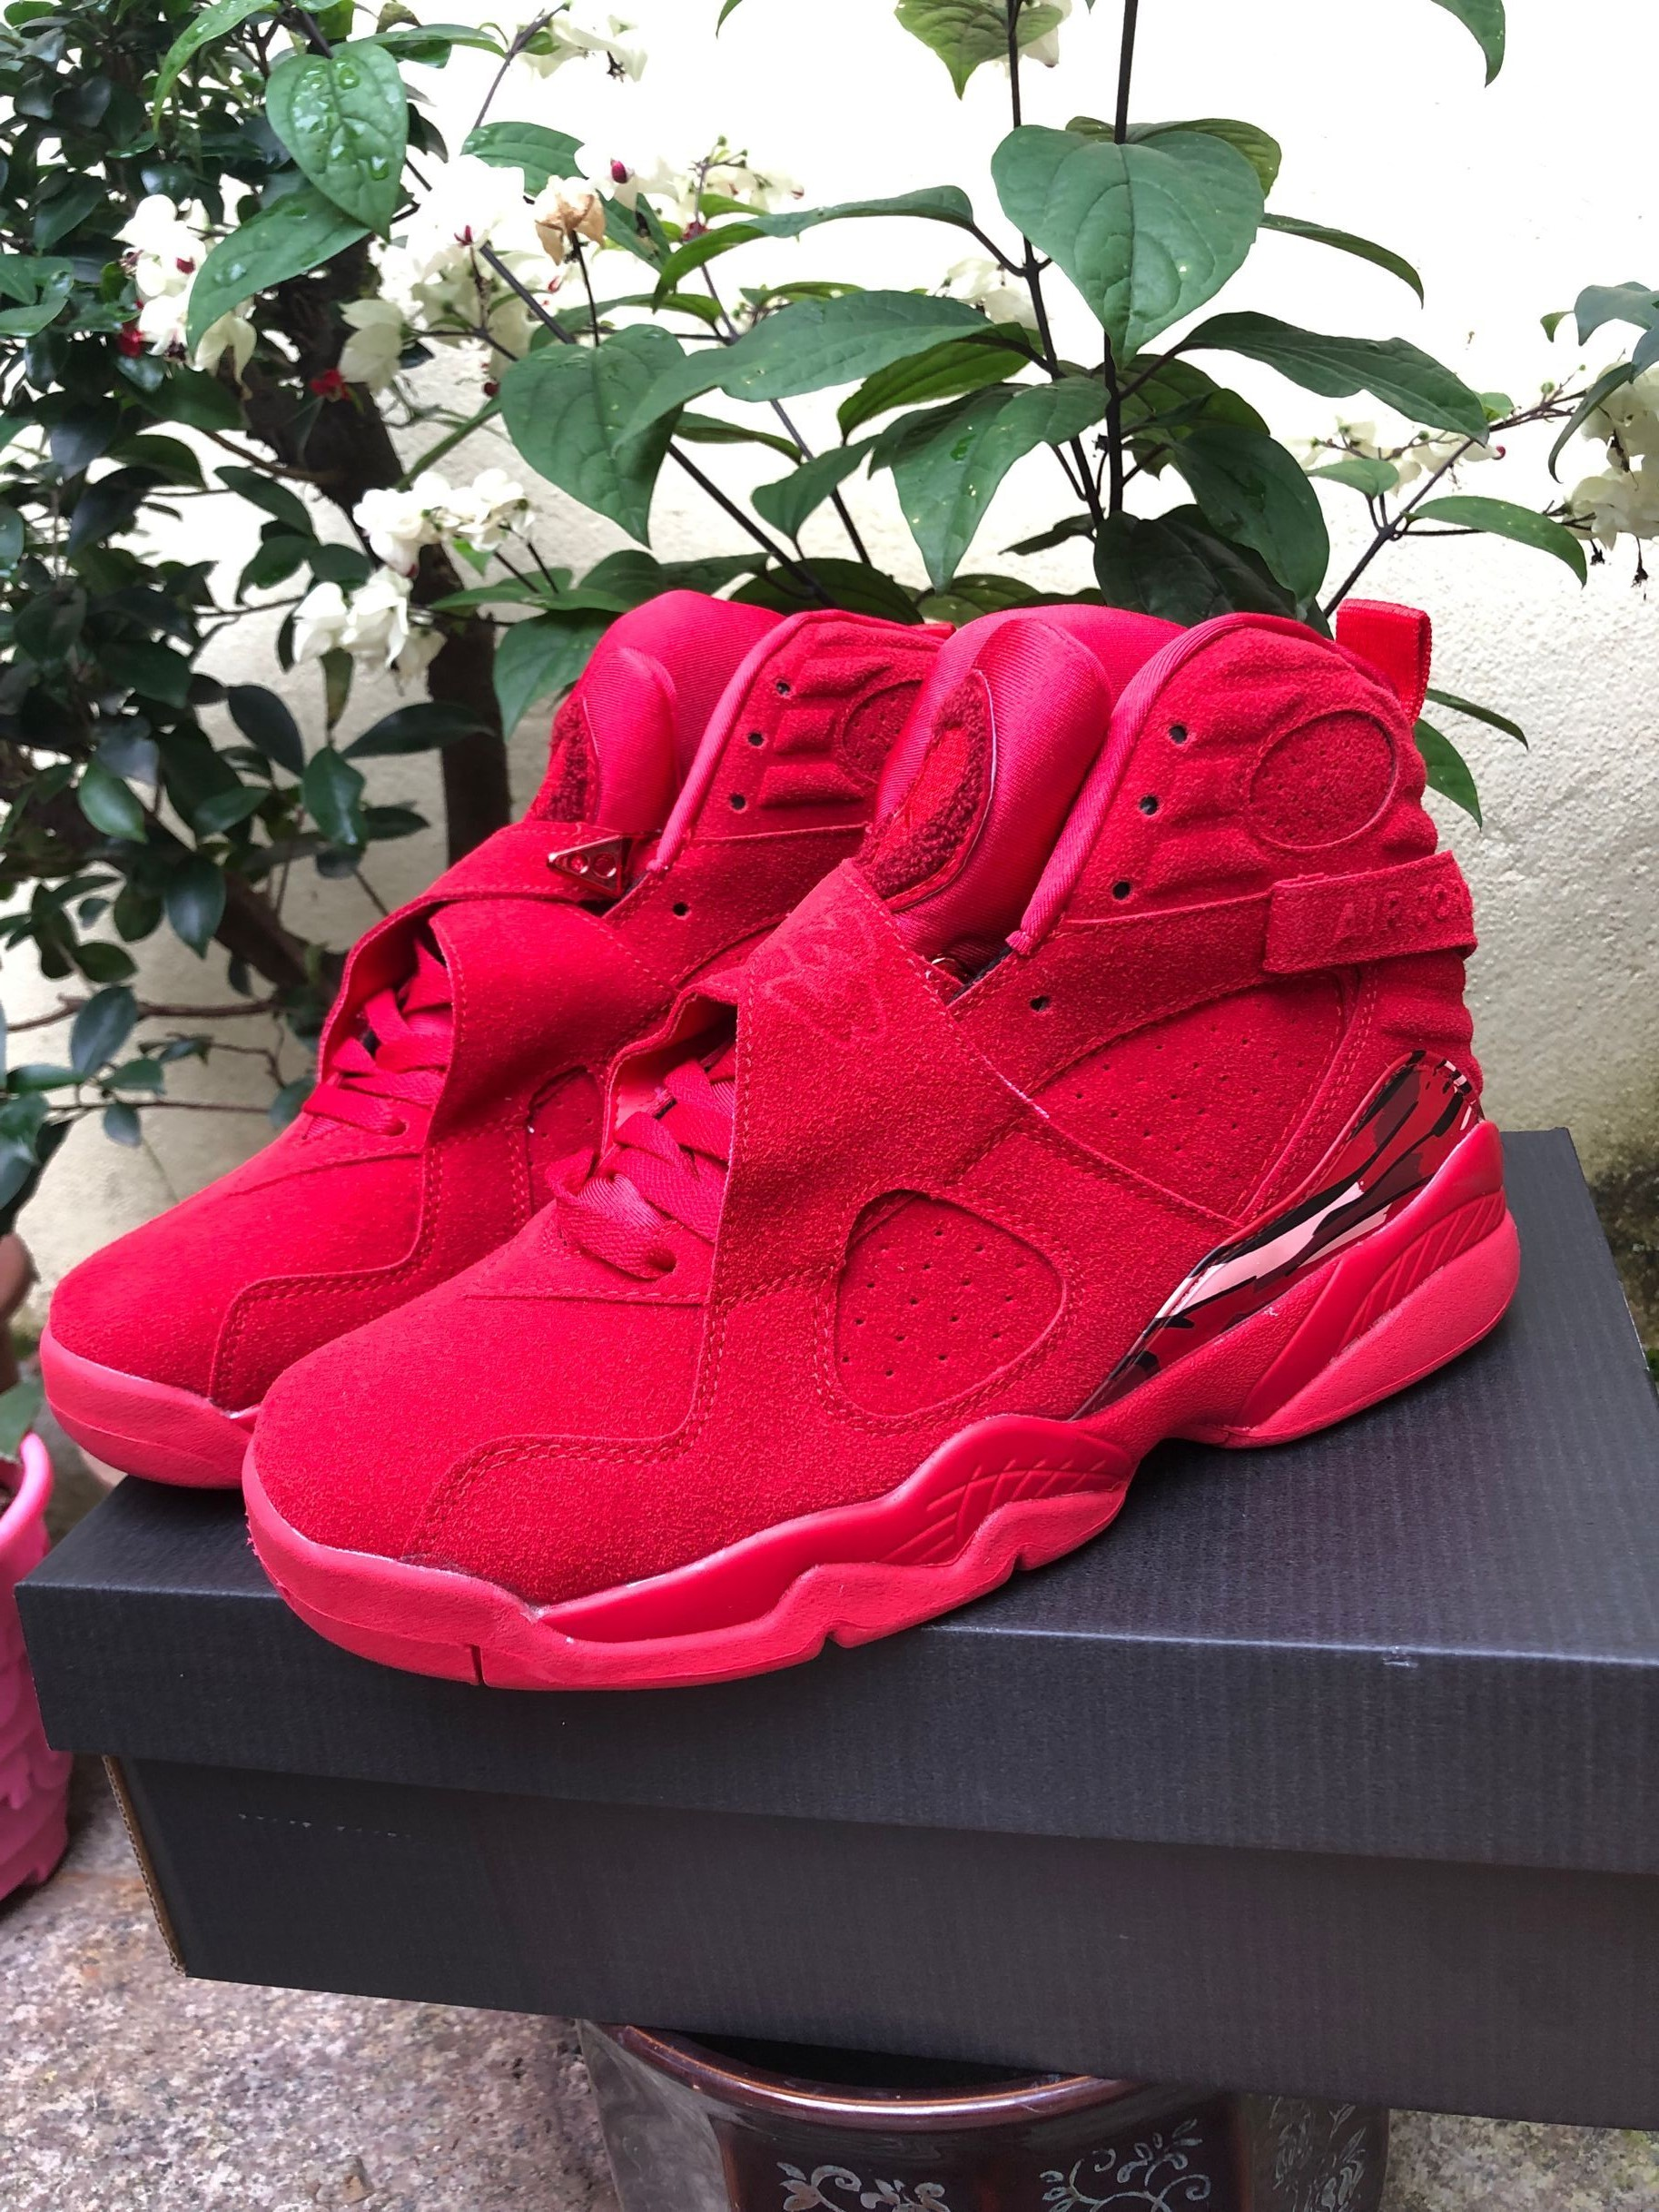 2019 Air Jordan 8 Retro Hot Red Black Shoes